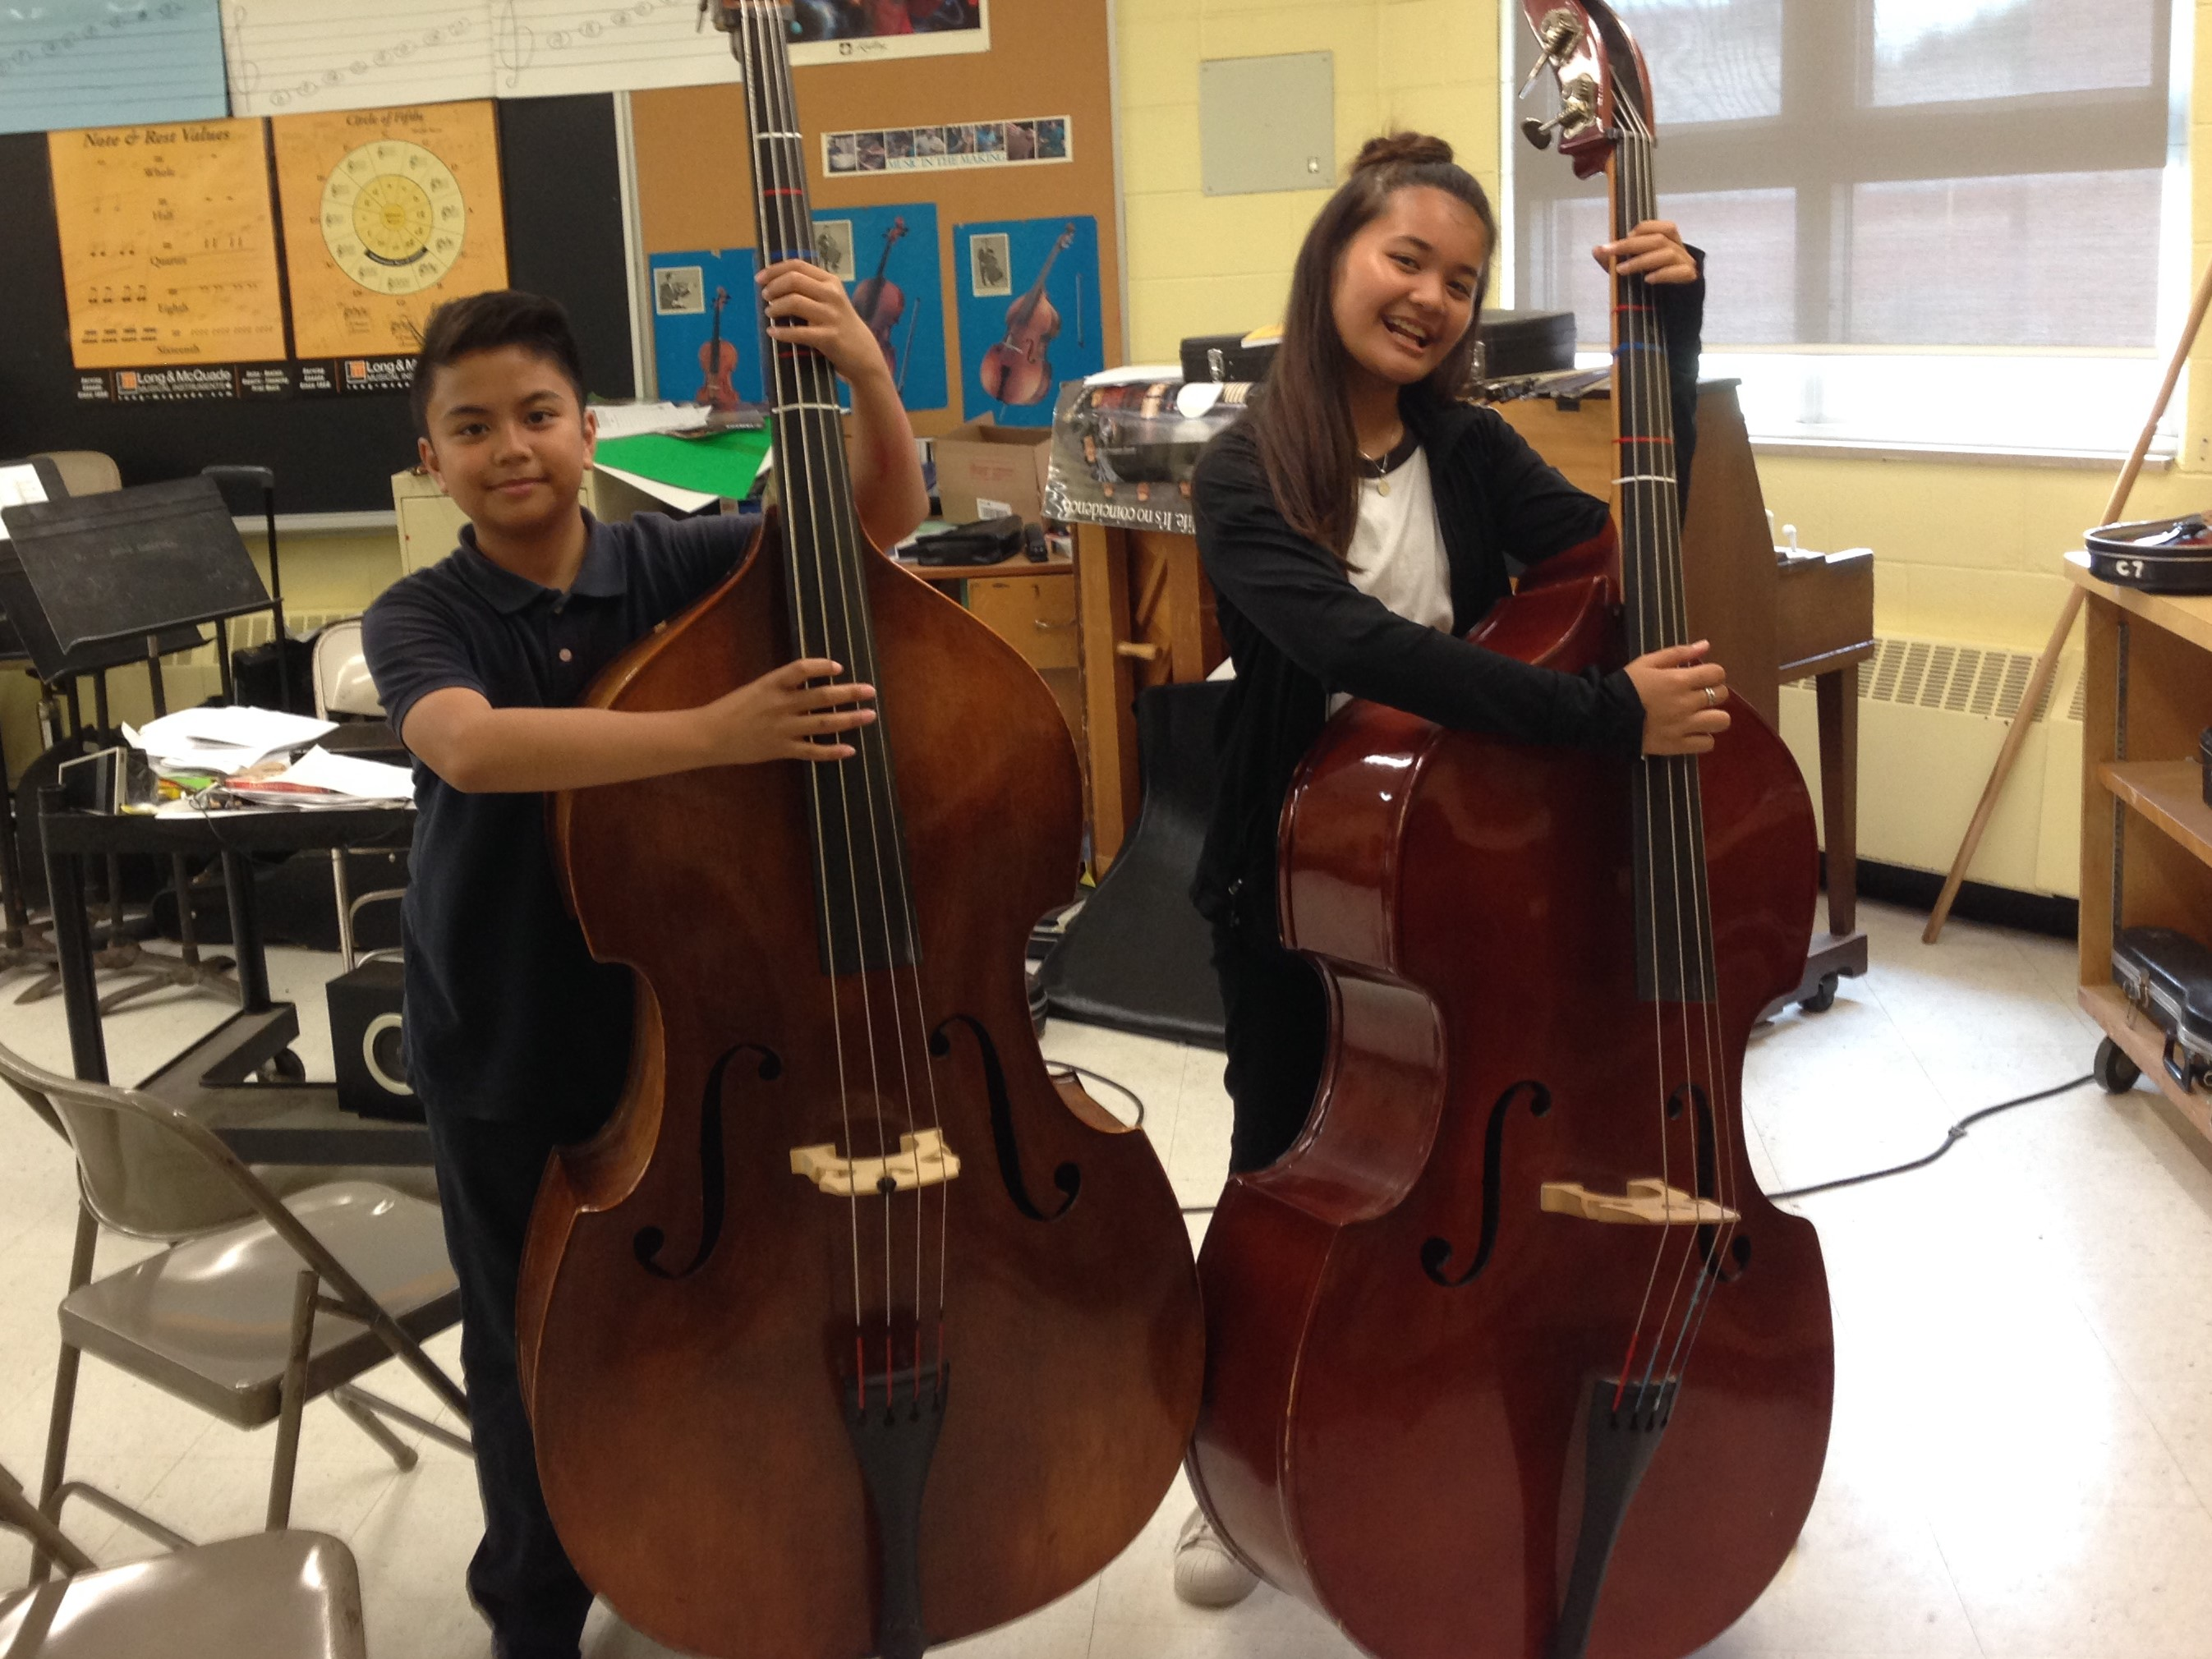 Two students holding accoustic basses